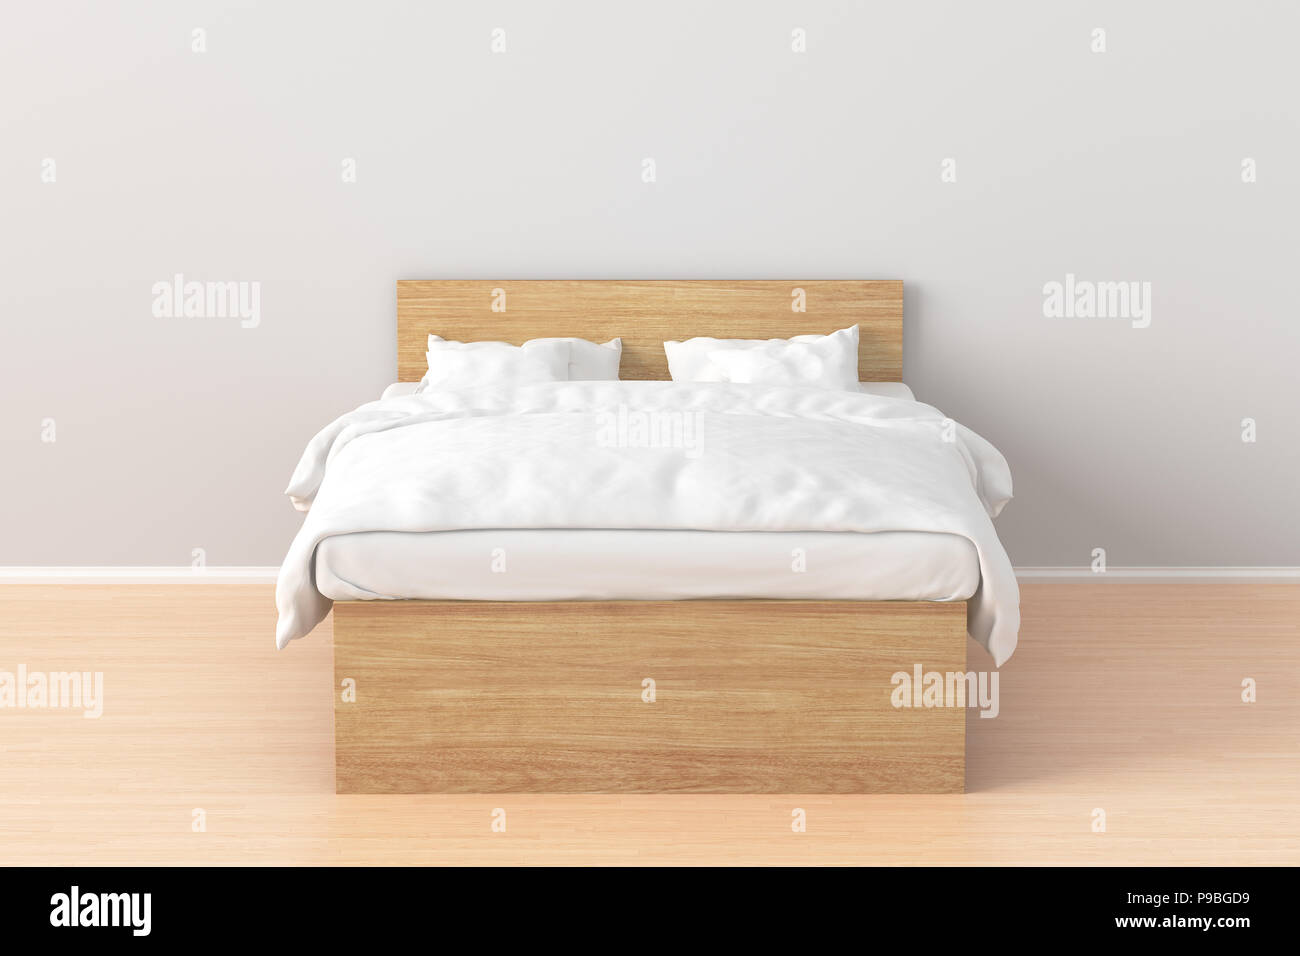 Picture of: Wooden Double Bed With White Linen In Simple Interior 3d Render Stock Photo Alamy